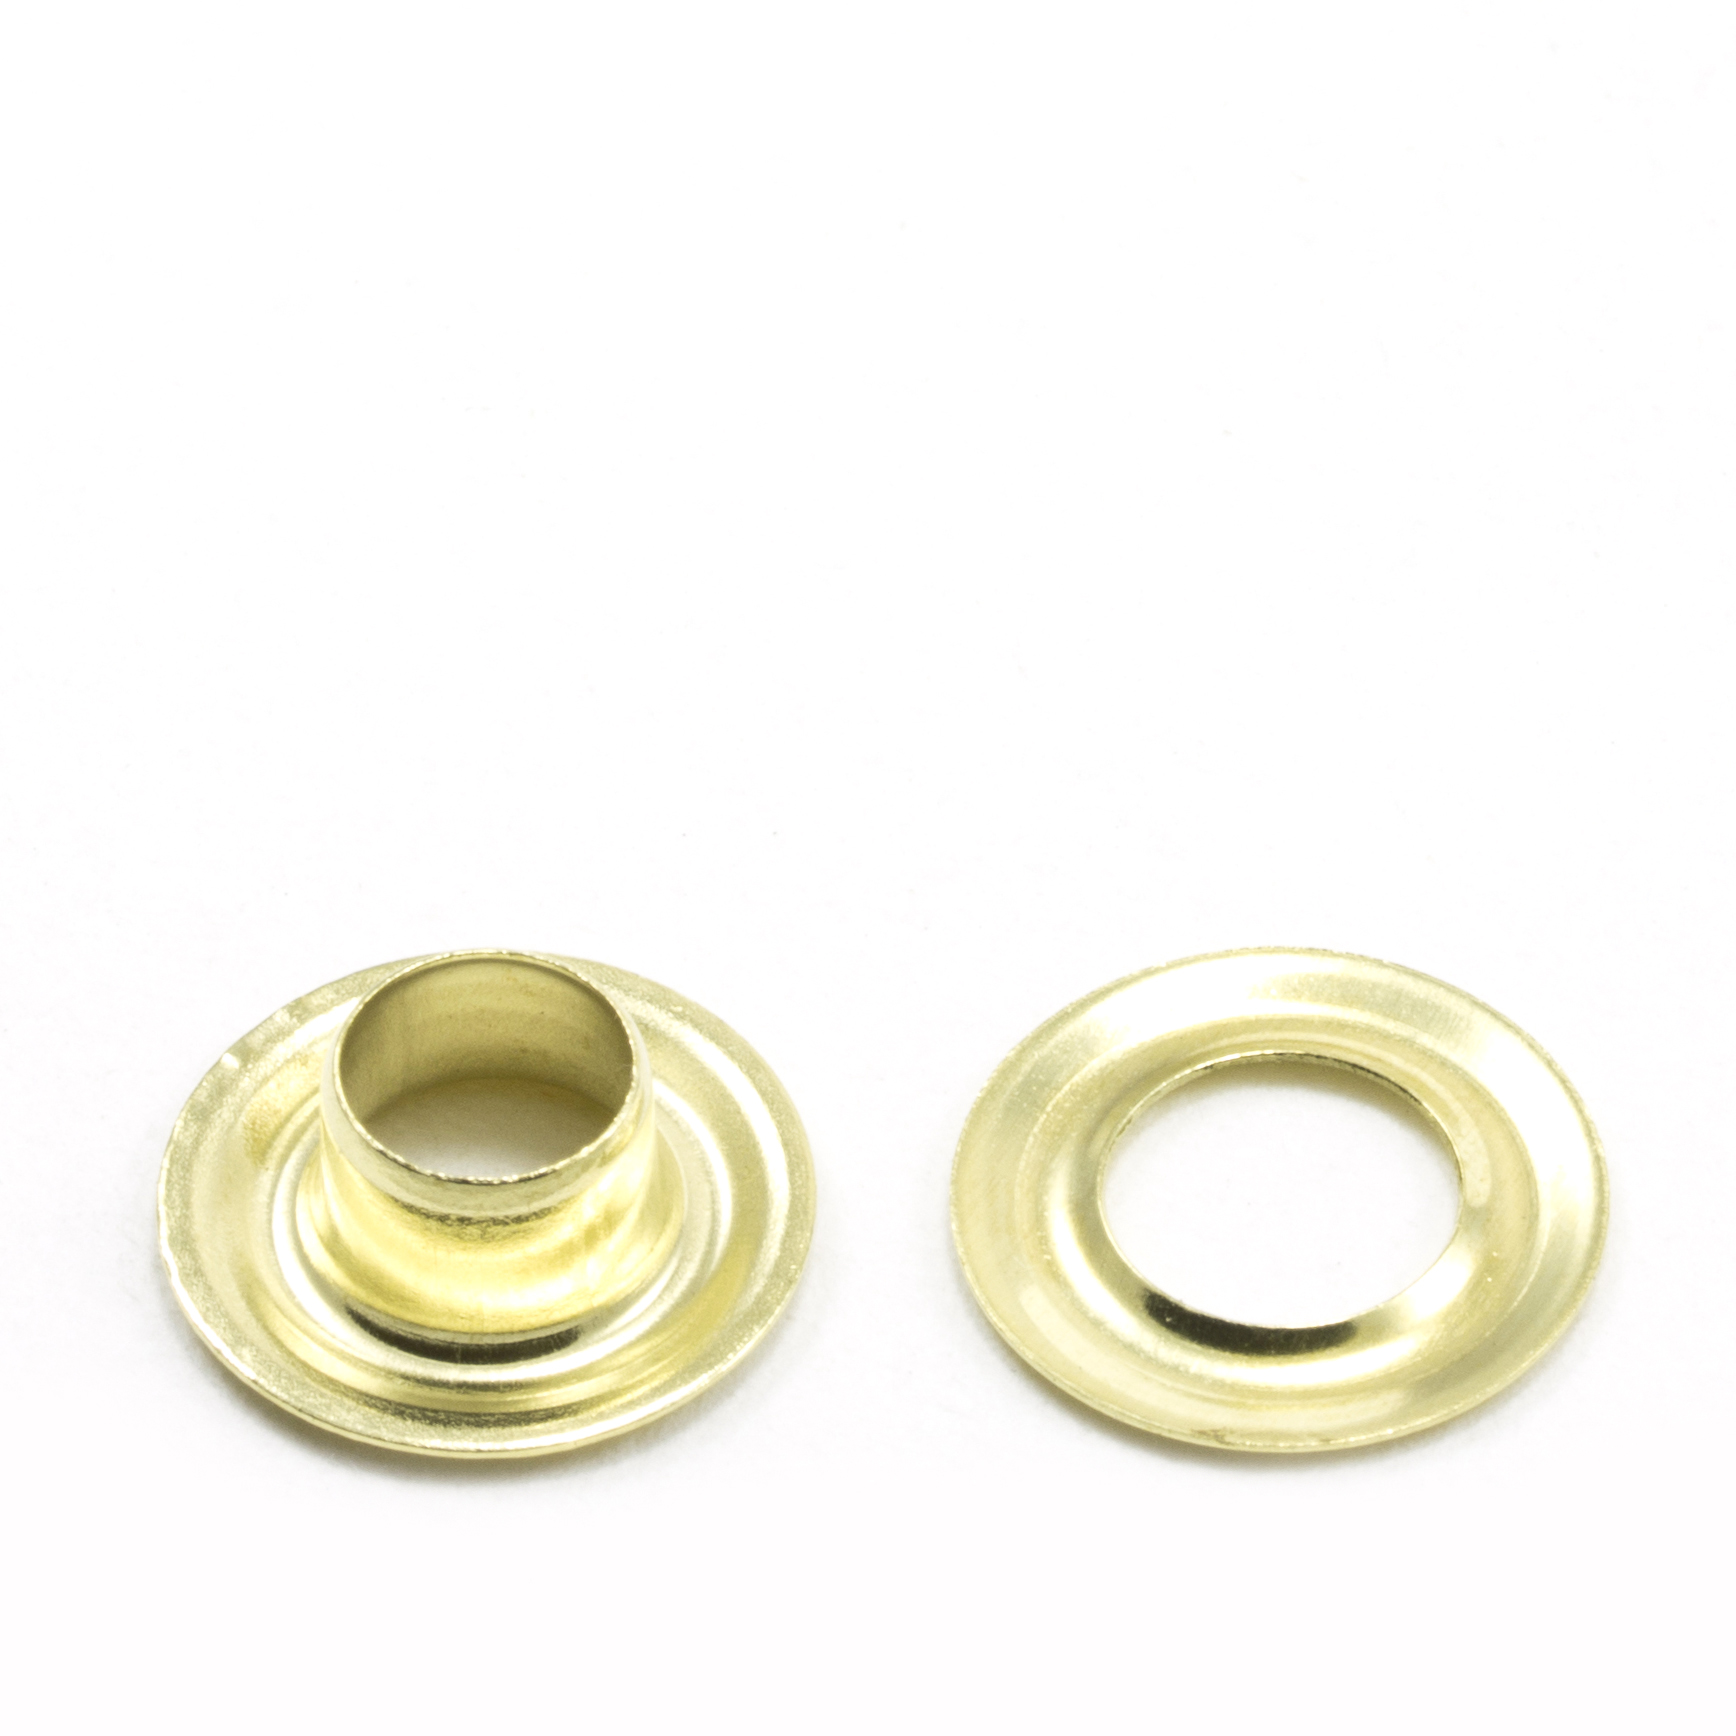 Thumbnail Grommet with Plain Washer #0 Brass 1/4 0